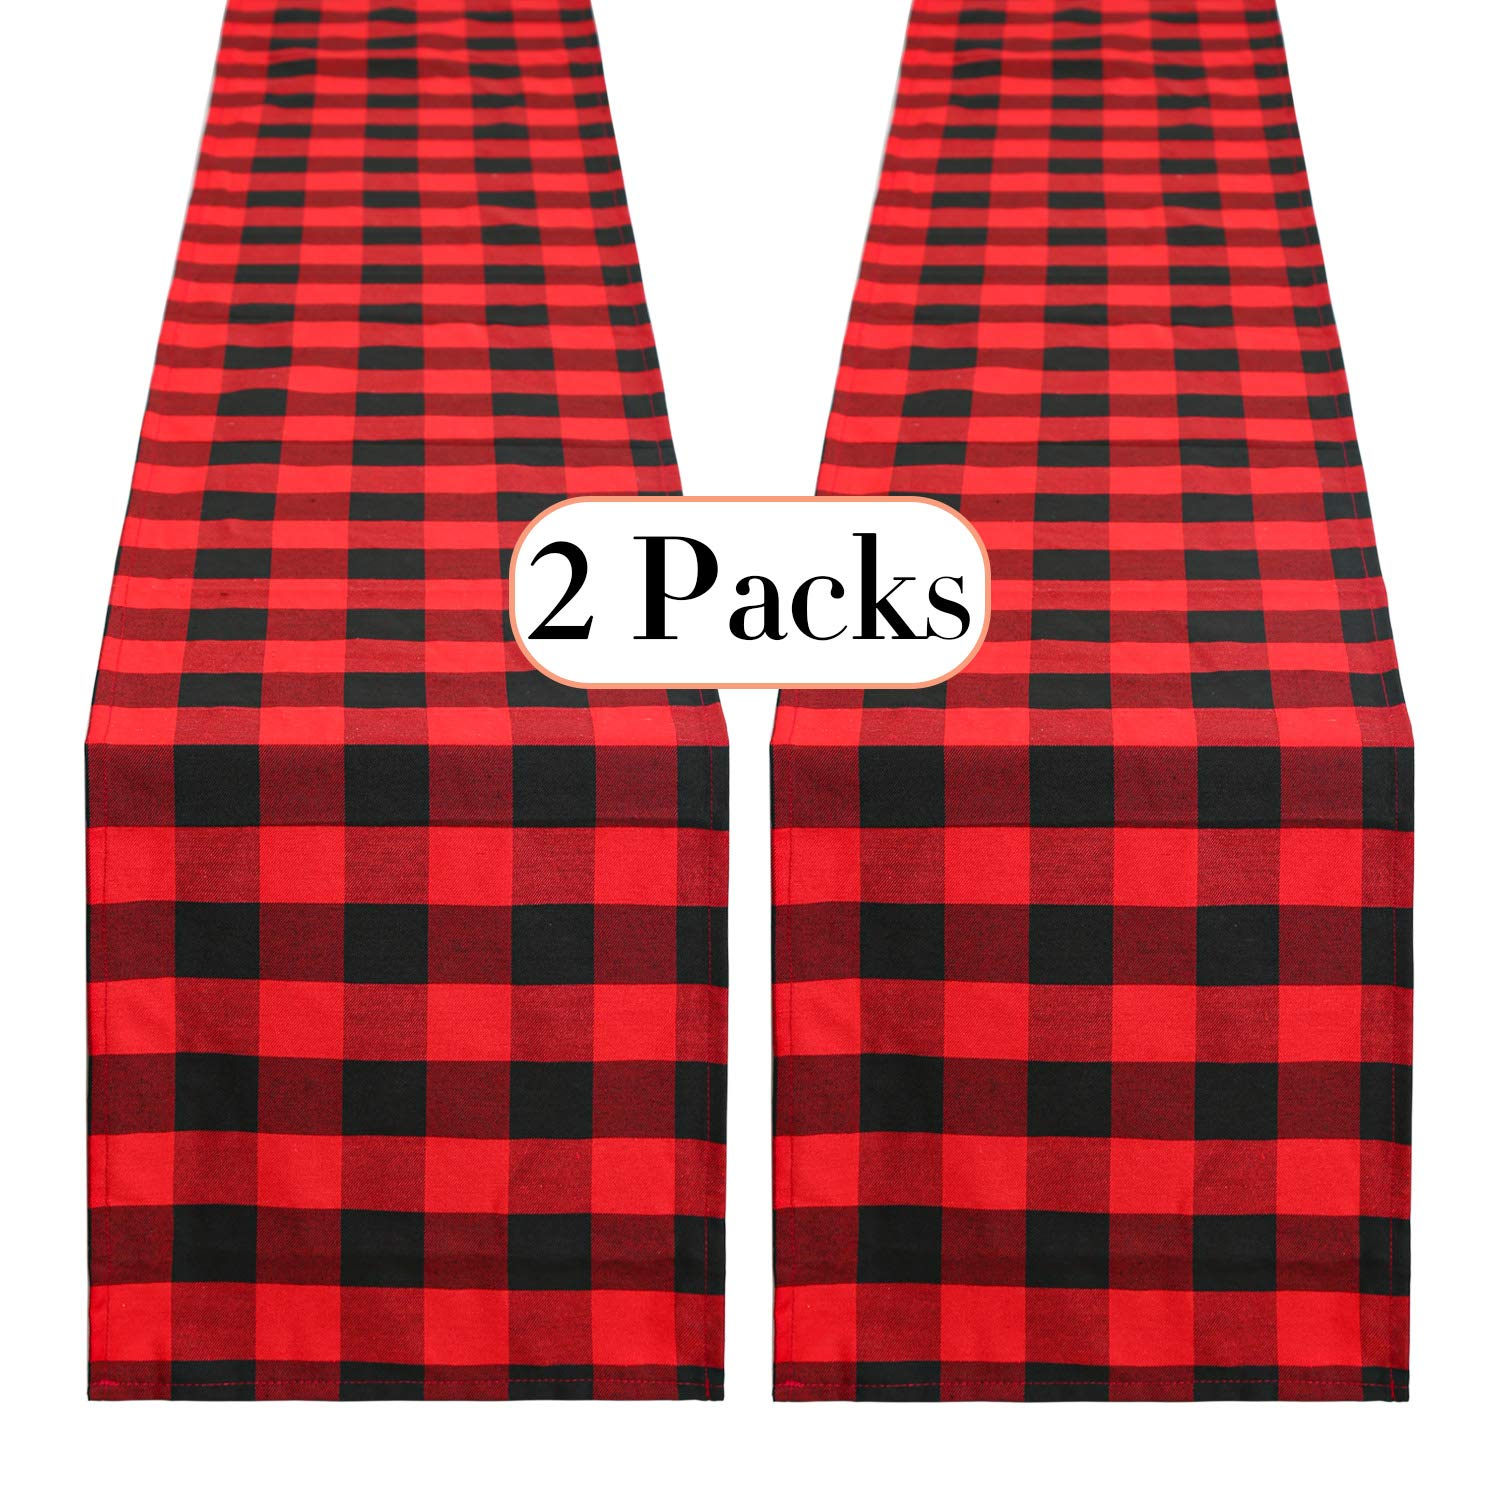 QueenDream Checkered Table Runner Red and Black Runner 2 Pack 12 x 84 Inches Plaid Table Runner Kitchen Decor Christmas Decor Home Decor